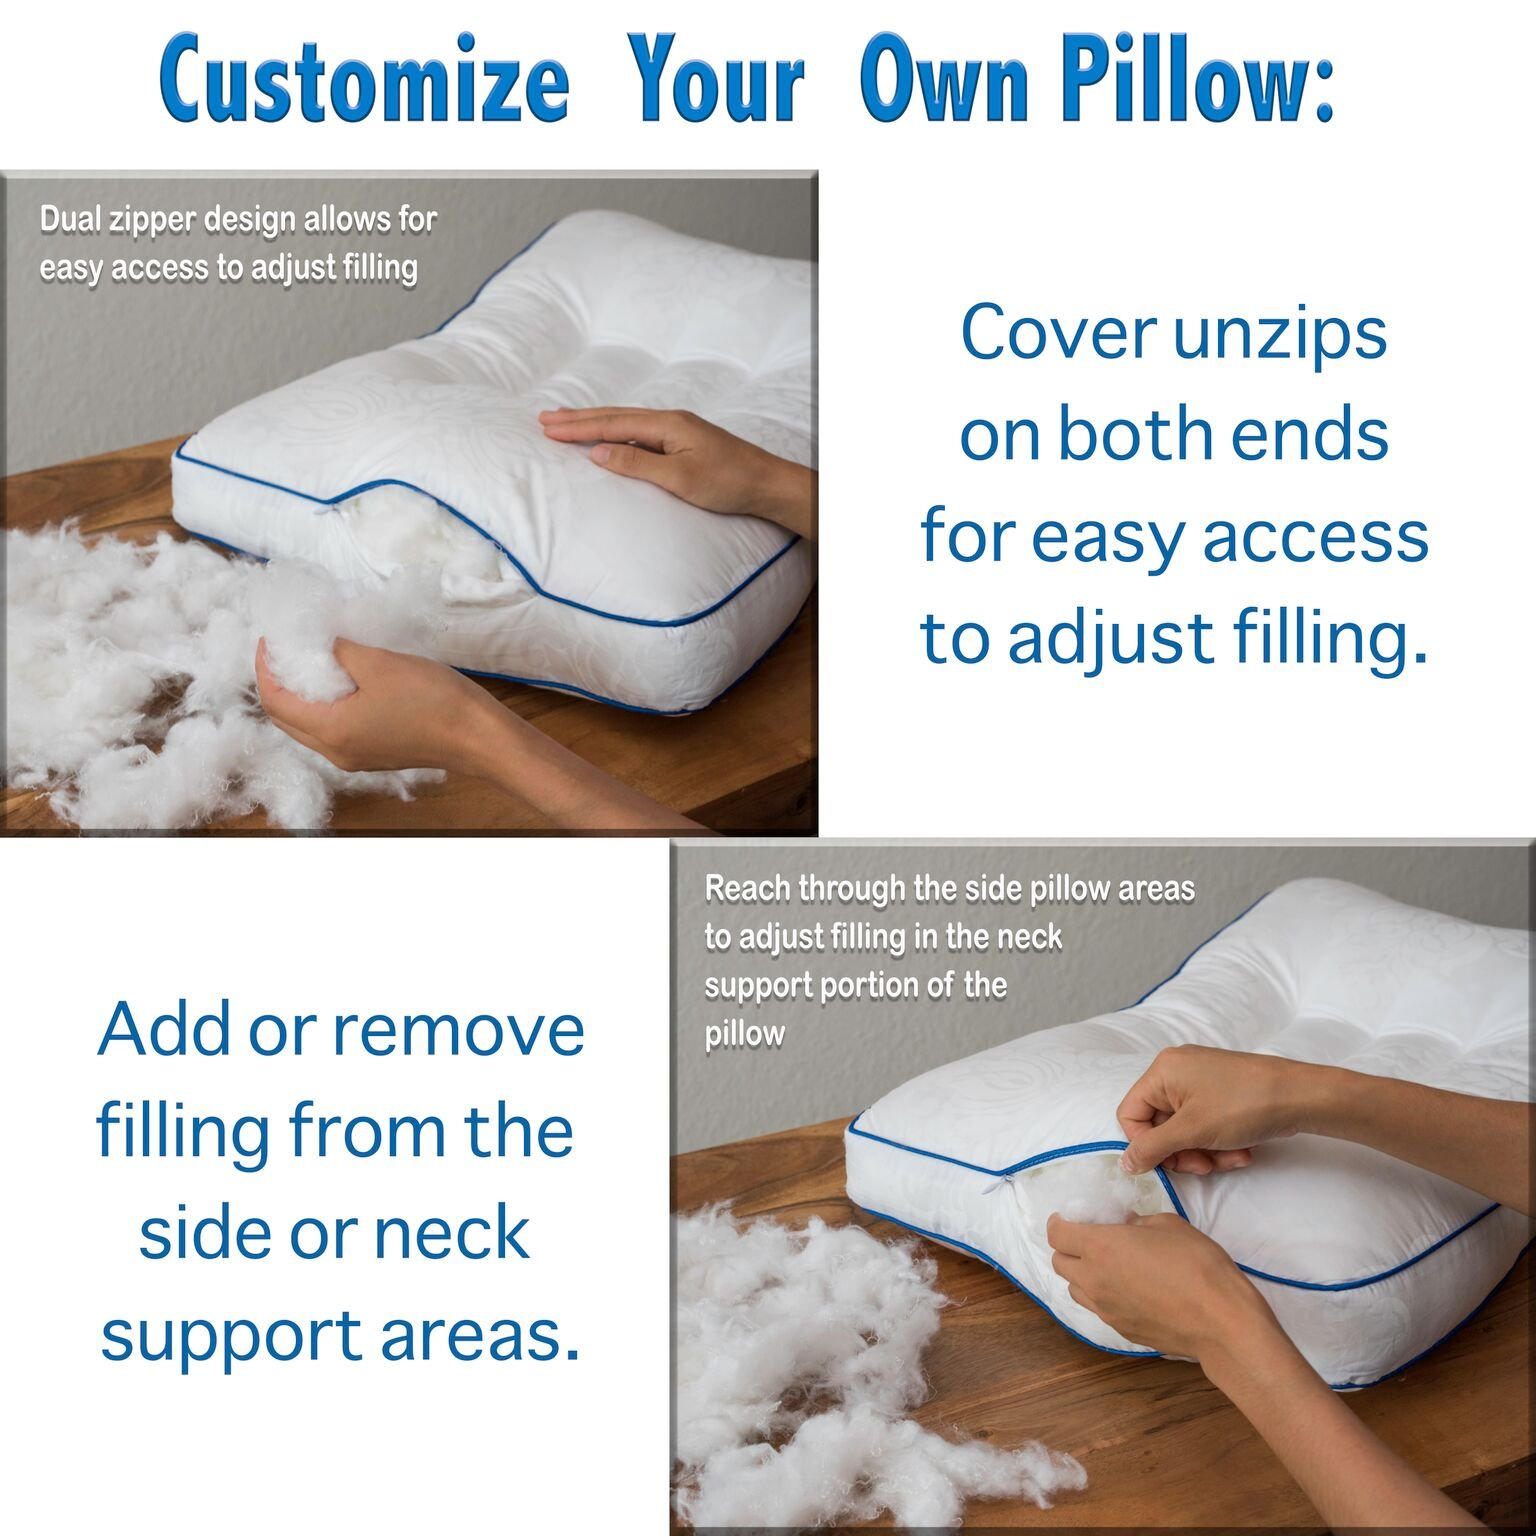 Nature's Guest Cervical Support Pillow - Fully adjustable, doctor recommended contour design - Helps reduce neck and back pain, improve cervical health - Hypoallergenic, For back and side sleepers by Nature's Guest (Image #6)